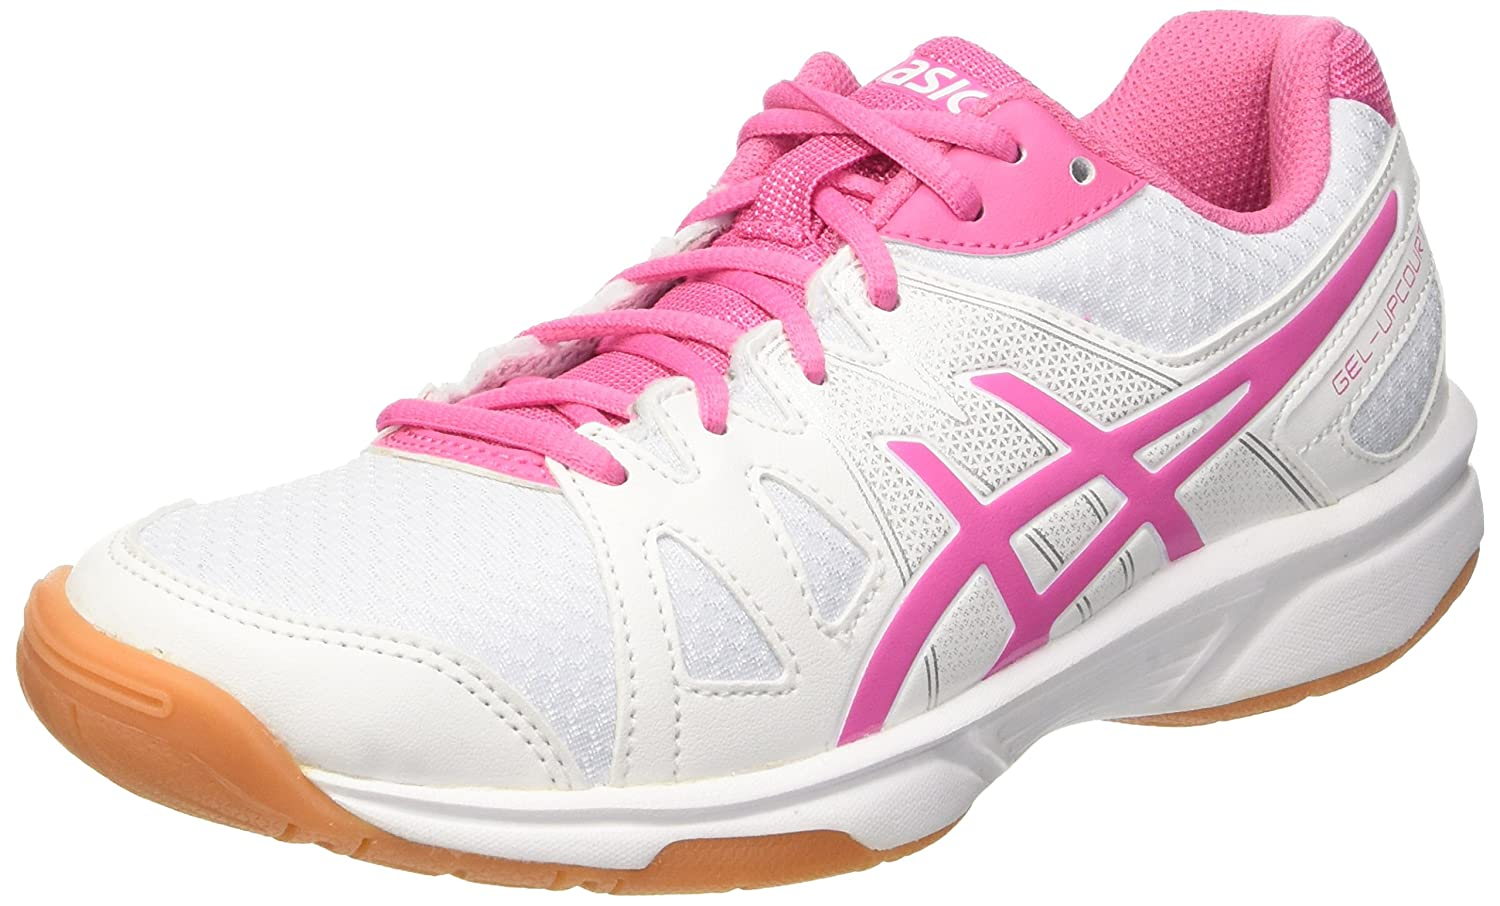 ASICS Unisex-Kinder Gel-Upcourt Gs Volleyballschuhe